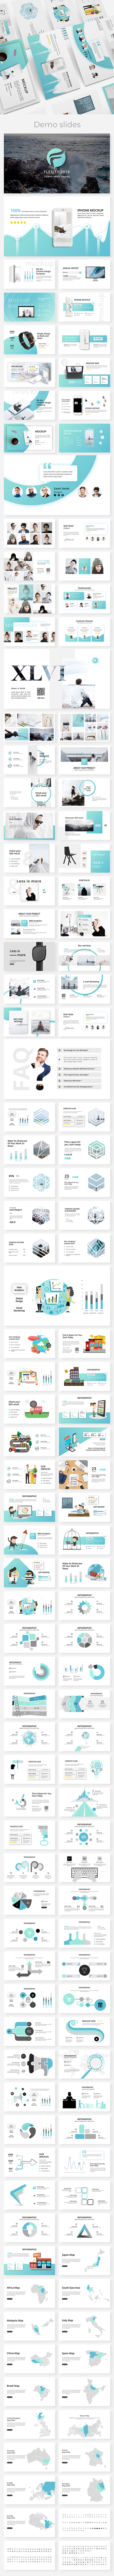 Flexity Creative Keynote Template - Creative Keynote Templates